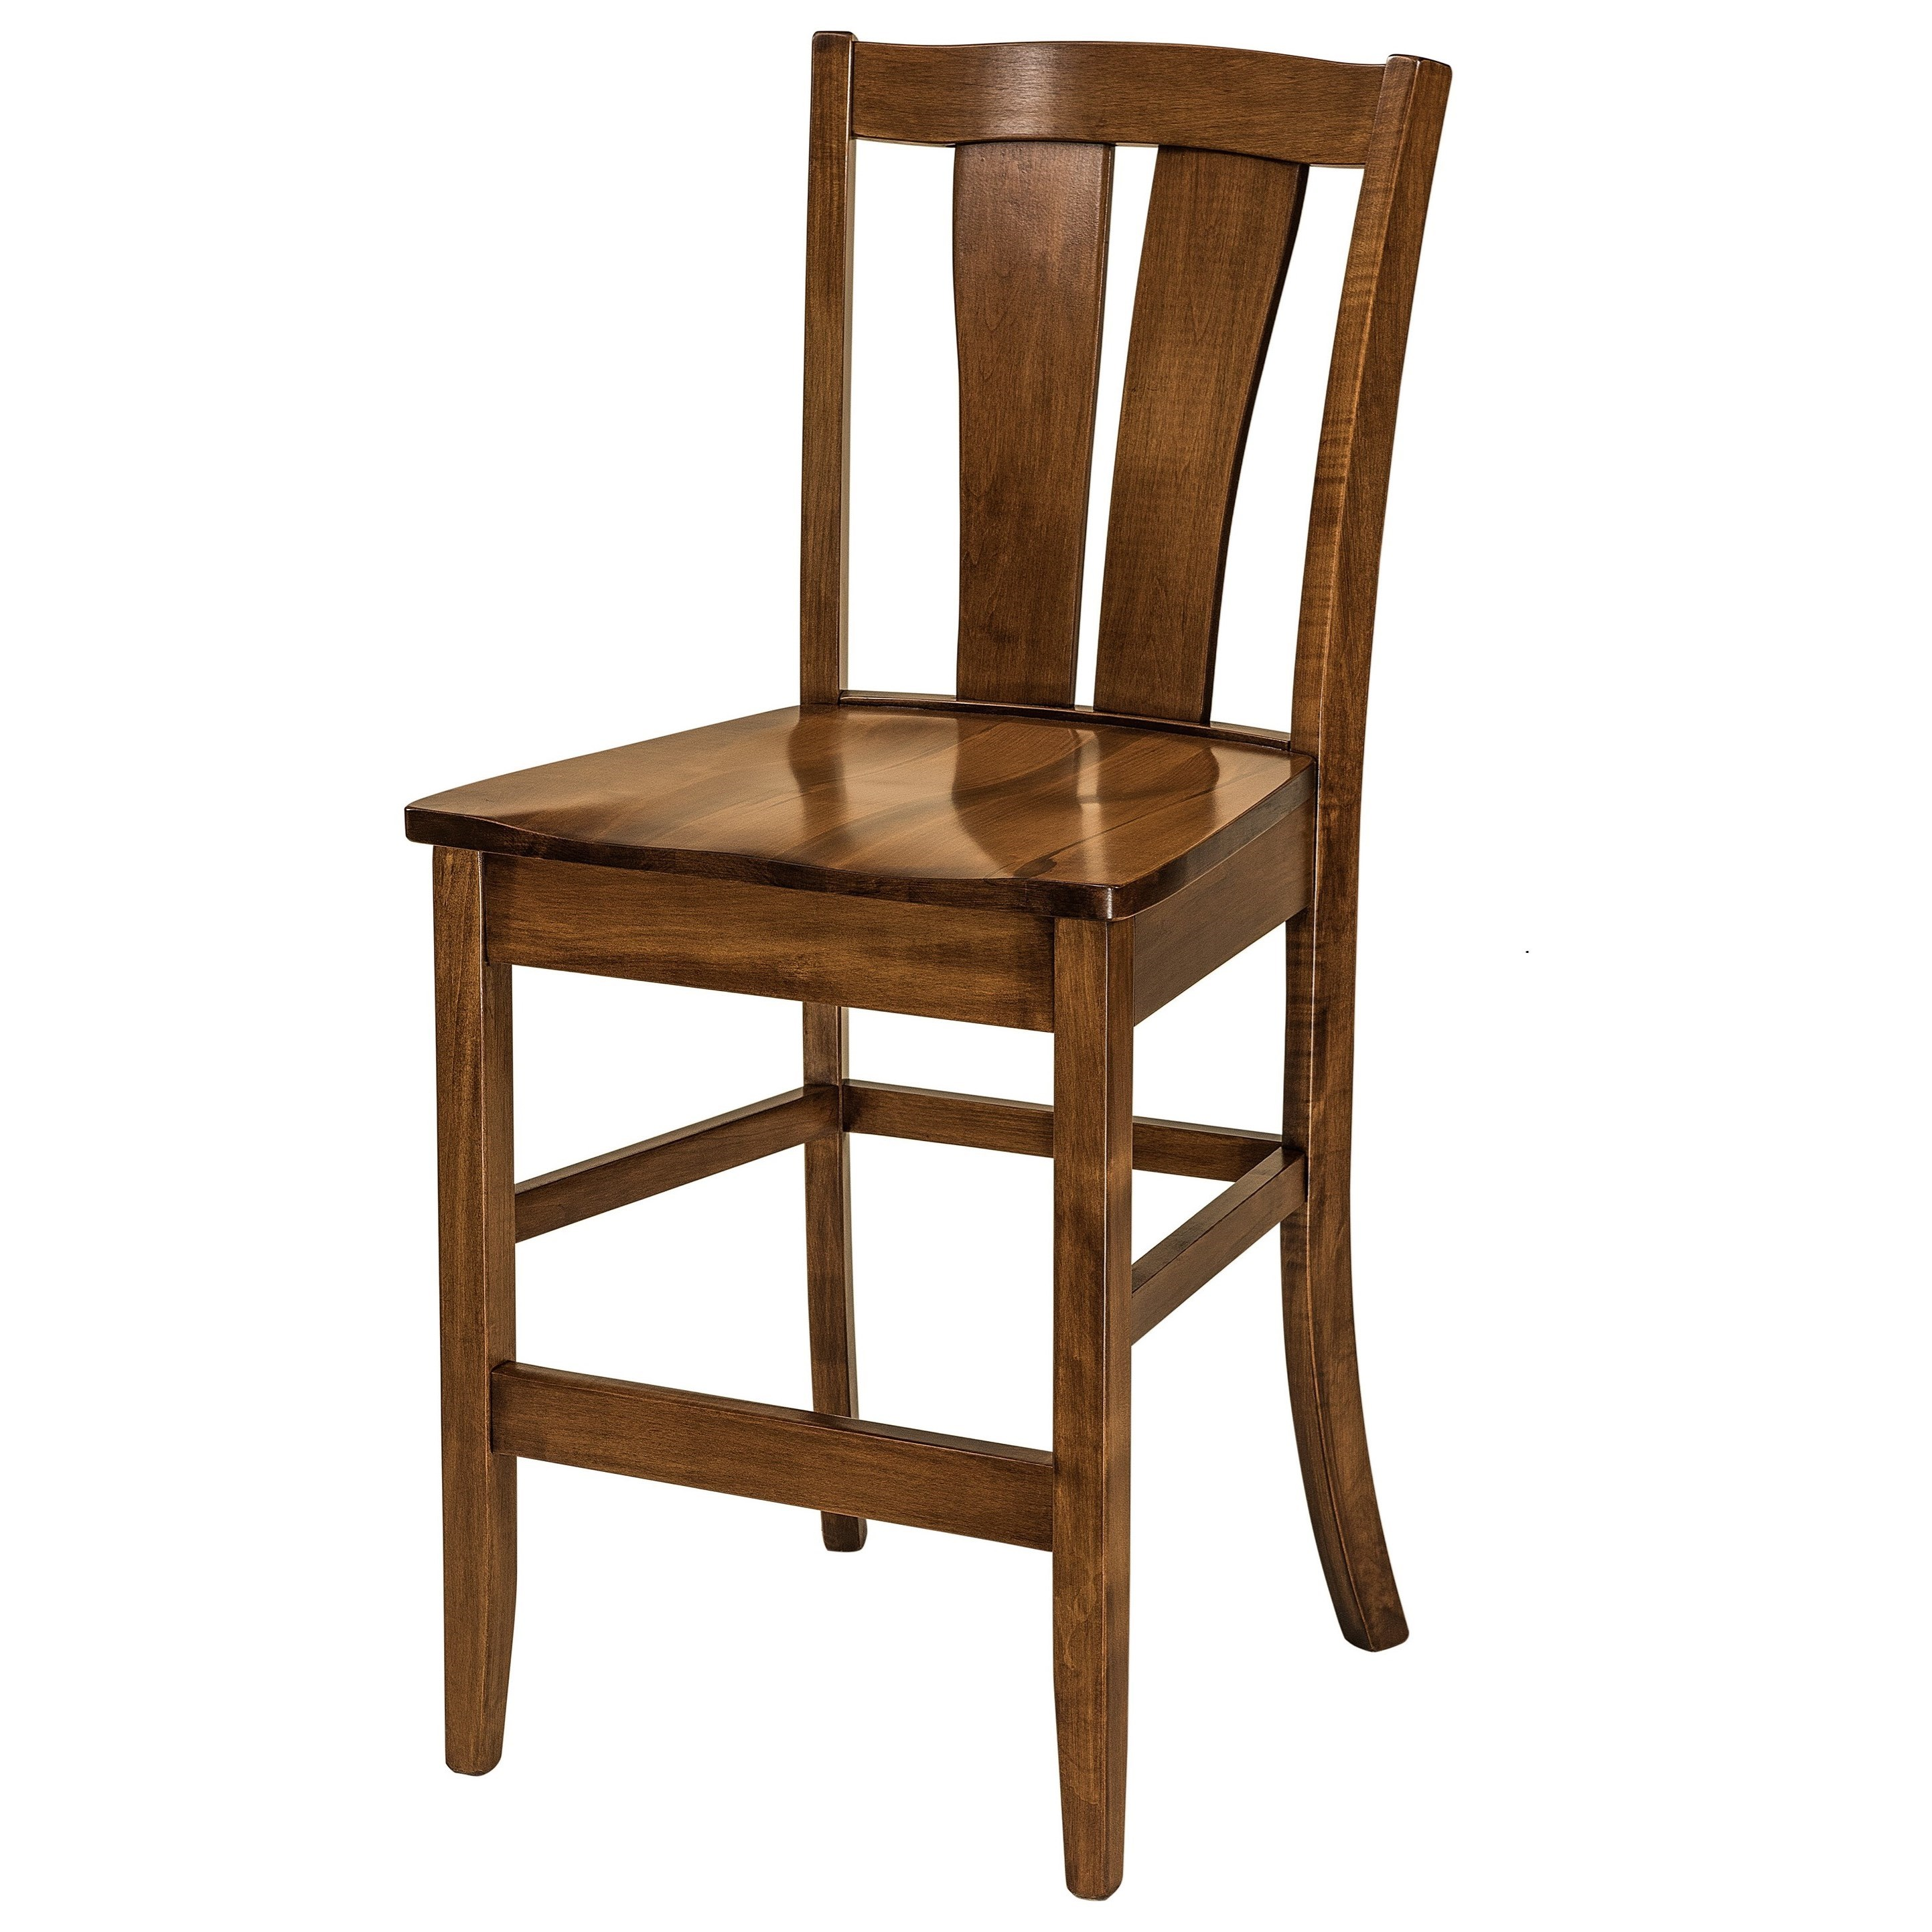 Brawley Stationary Bar Stool - Fabric Seat by F&N Woodworking at Mueller Furniture